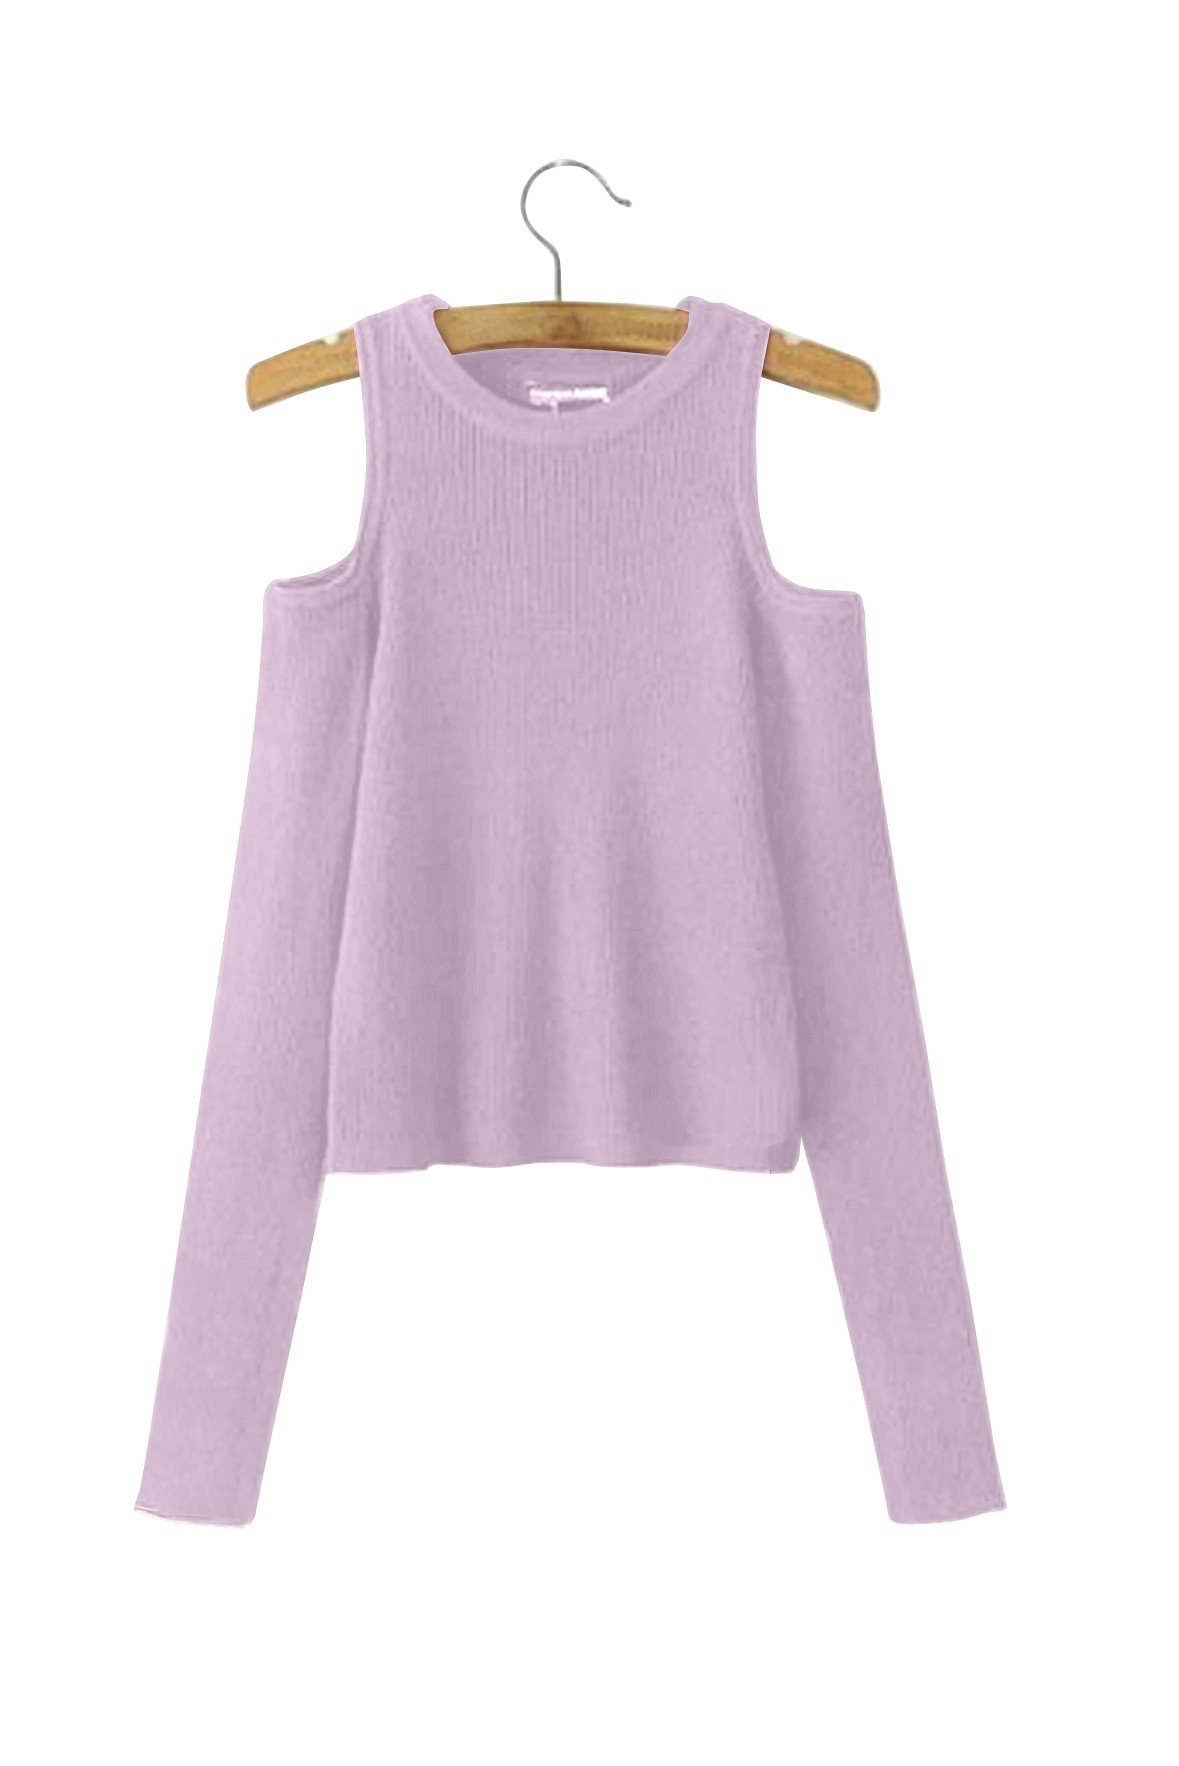 Dew Shoulder Thread Long Sleeve Top